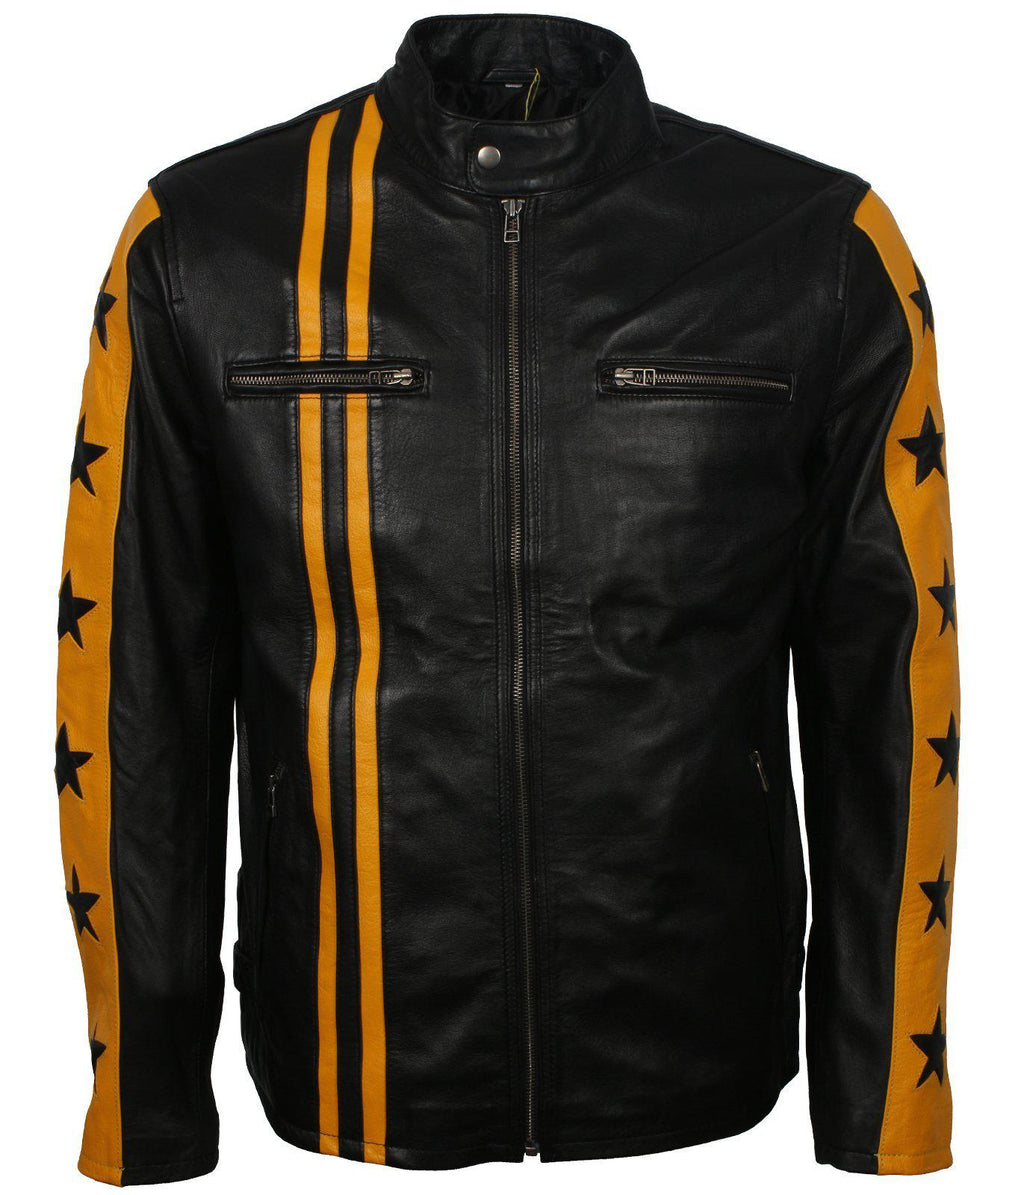 Black and Yellow Leather Jacket with Stars and Stripes